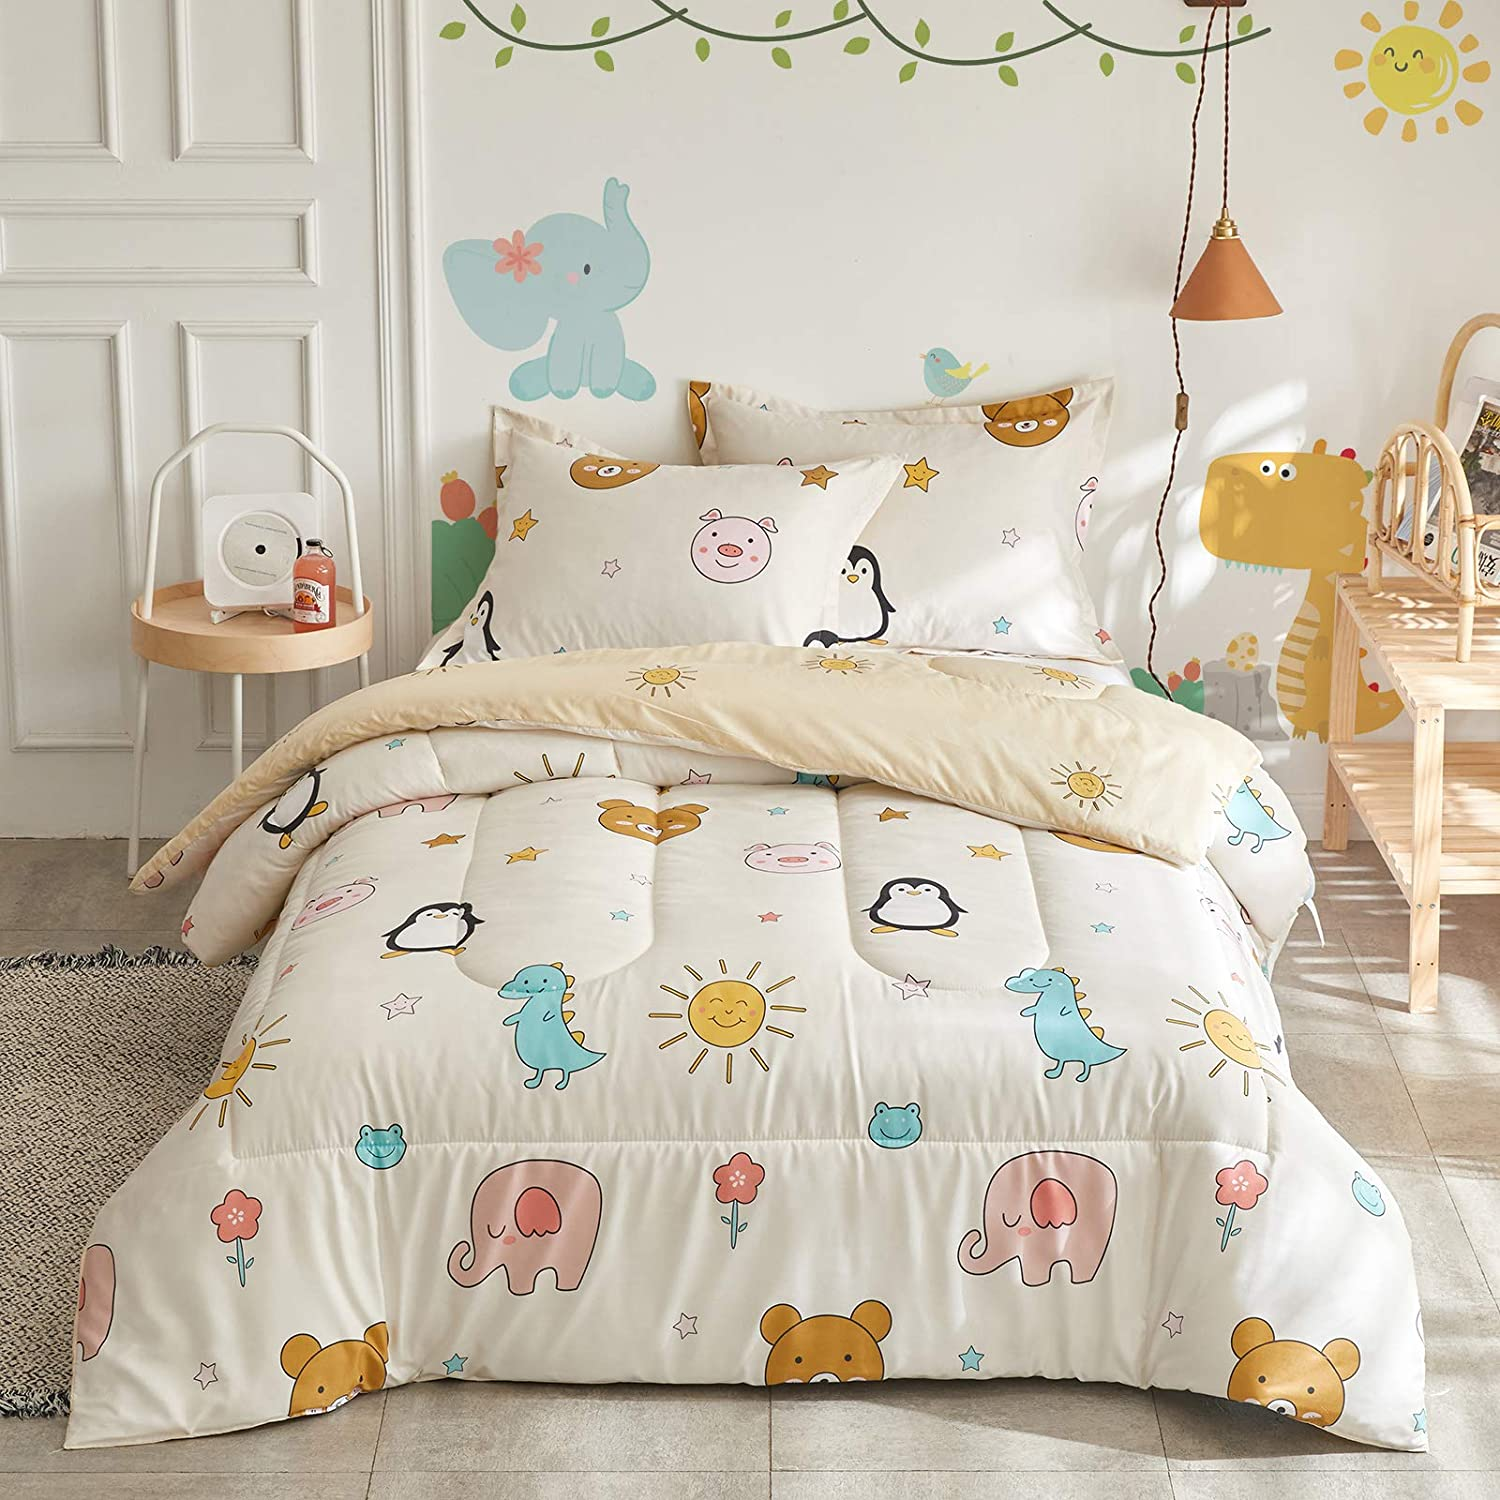 Flysheep Kids Queen Full Comforter Limited time Popularity sale 3 Colorful Bedding Set Piece